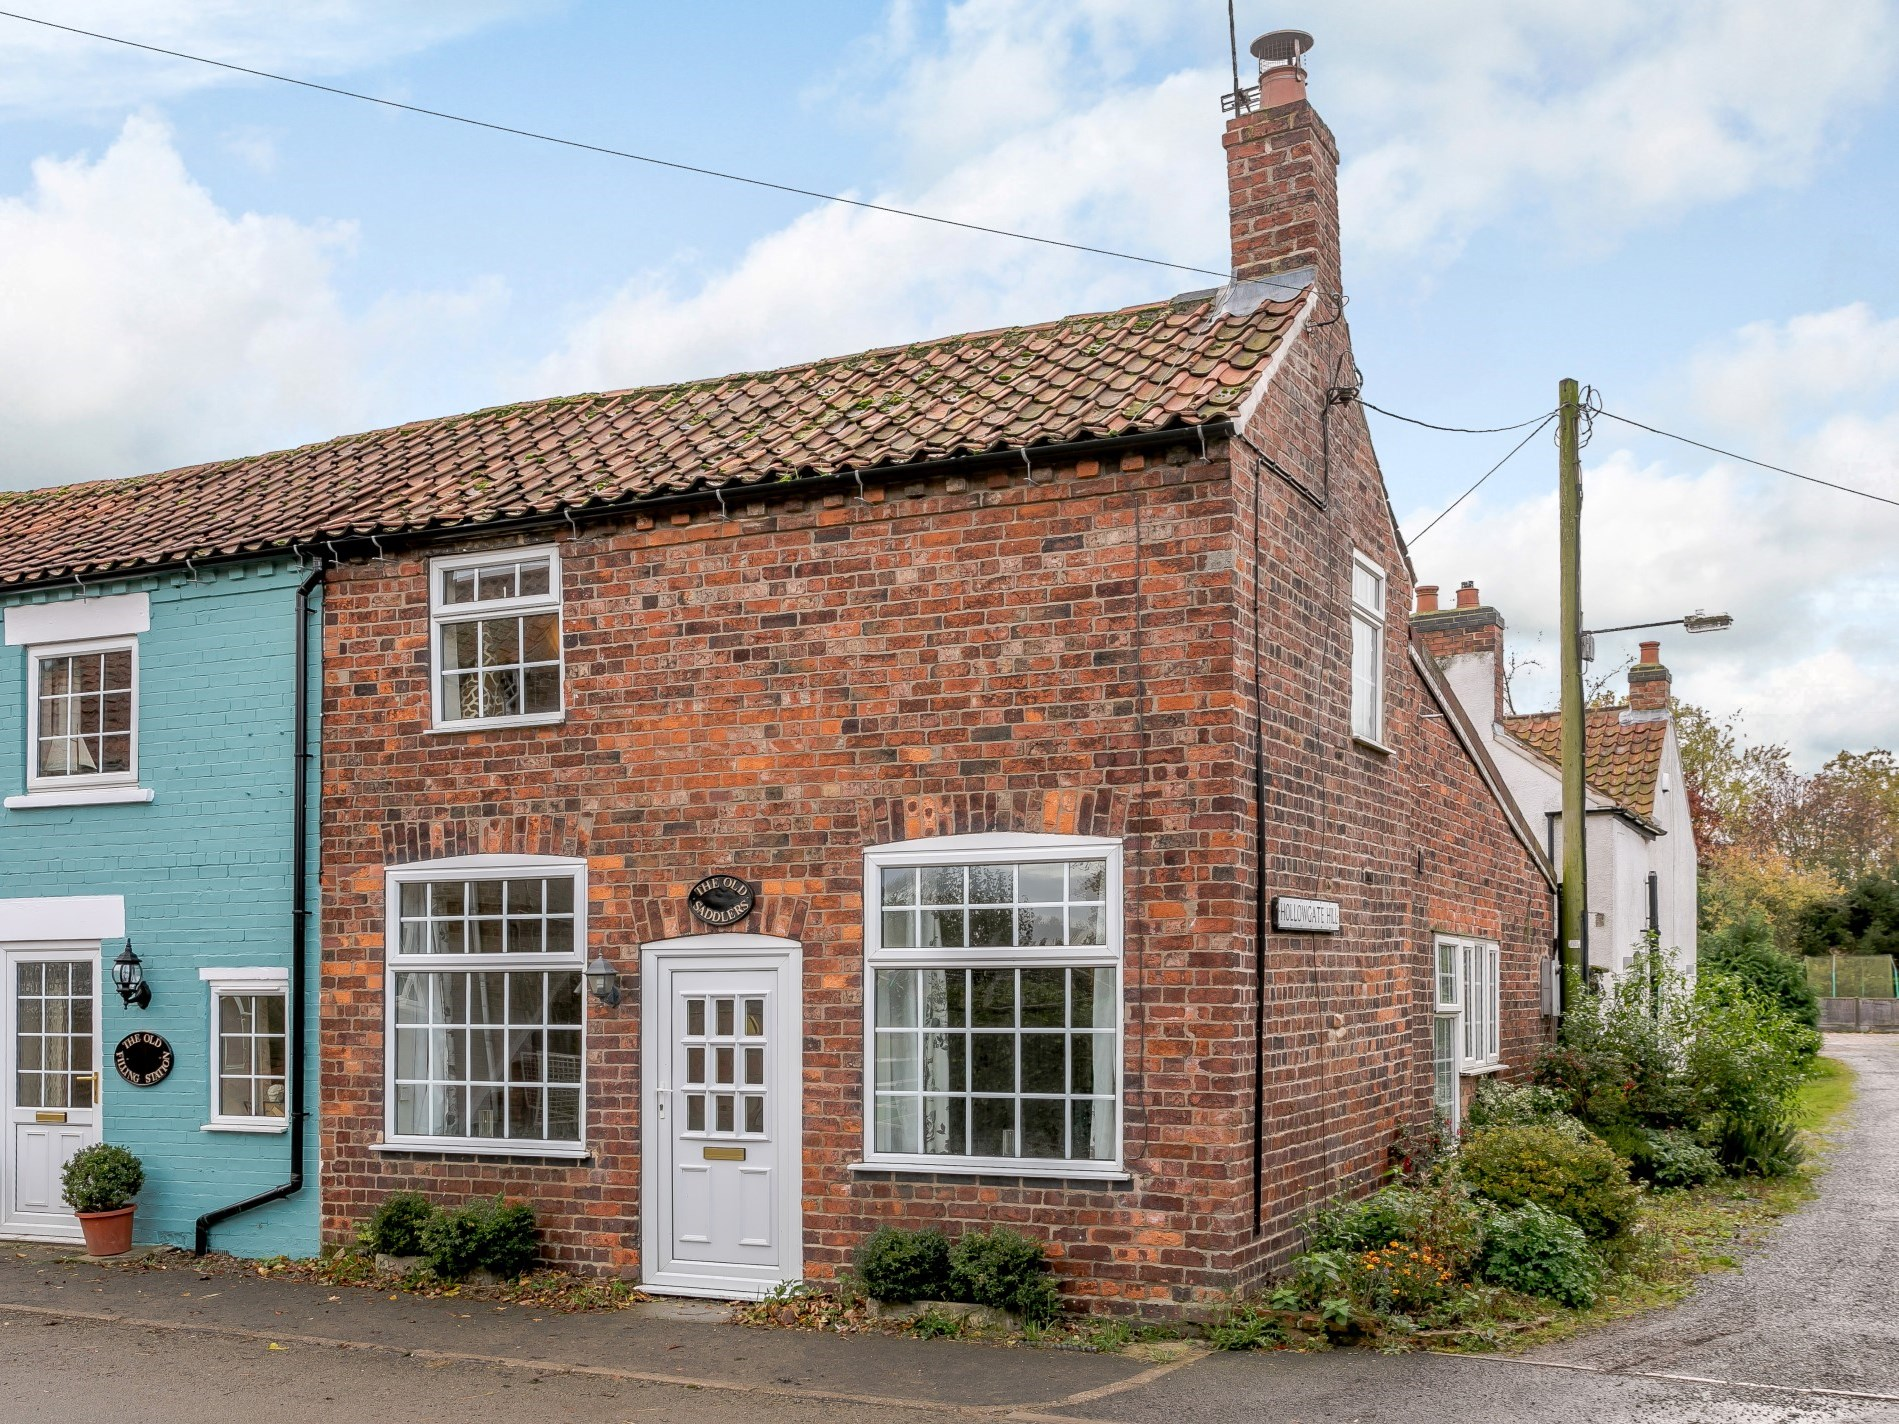 2 Bedroom Cottage in Gainsborough, East of England